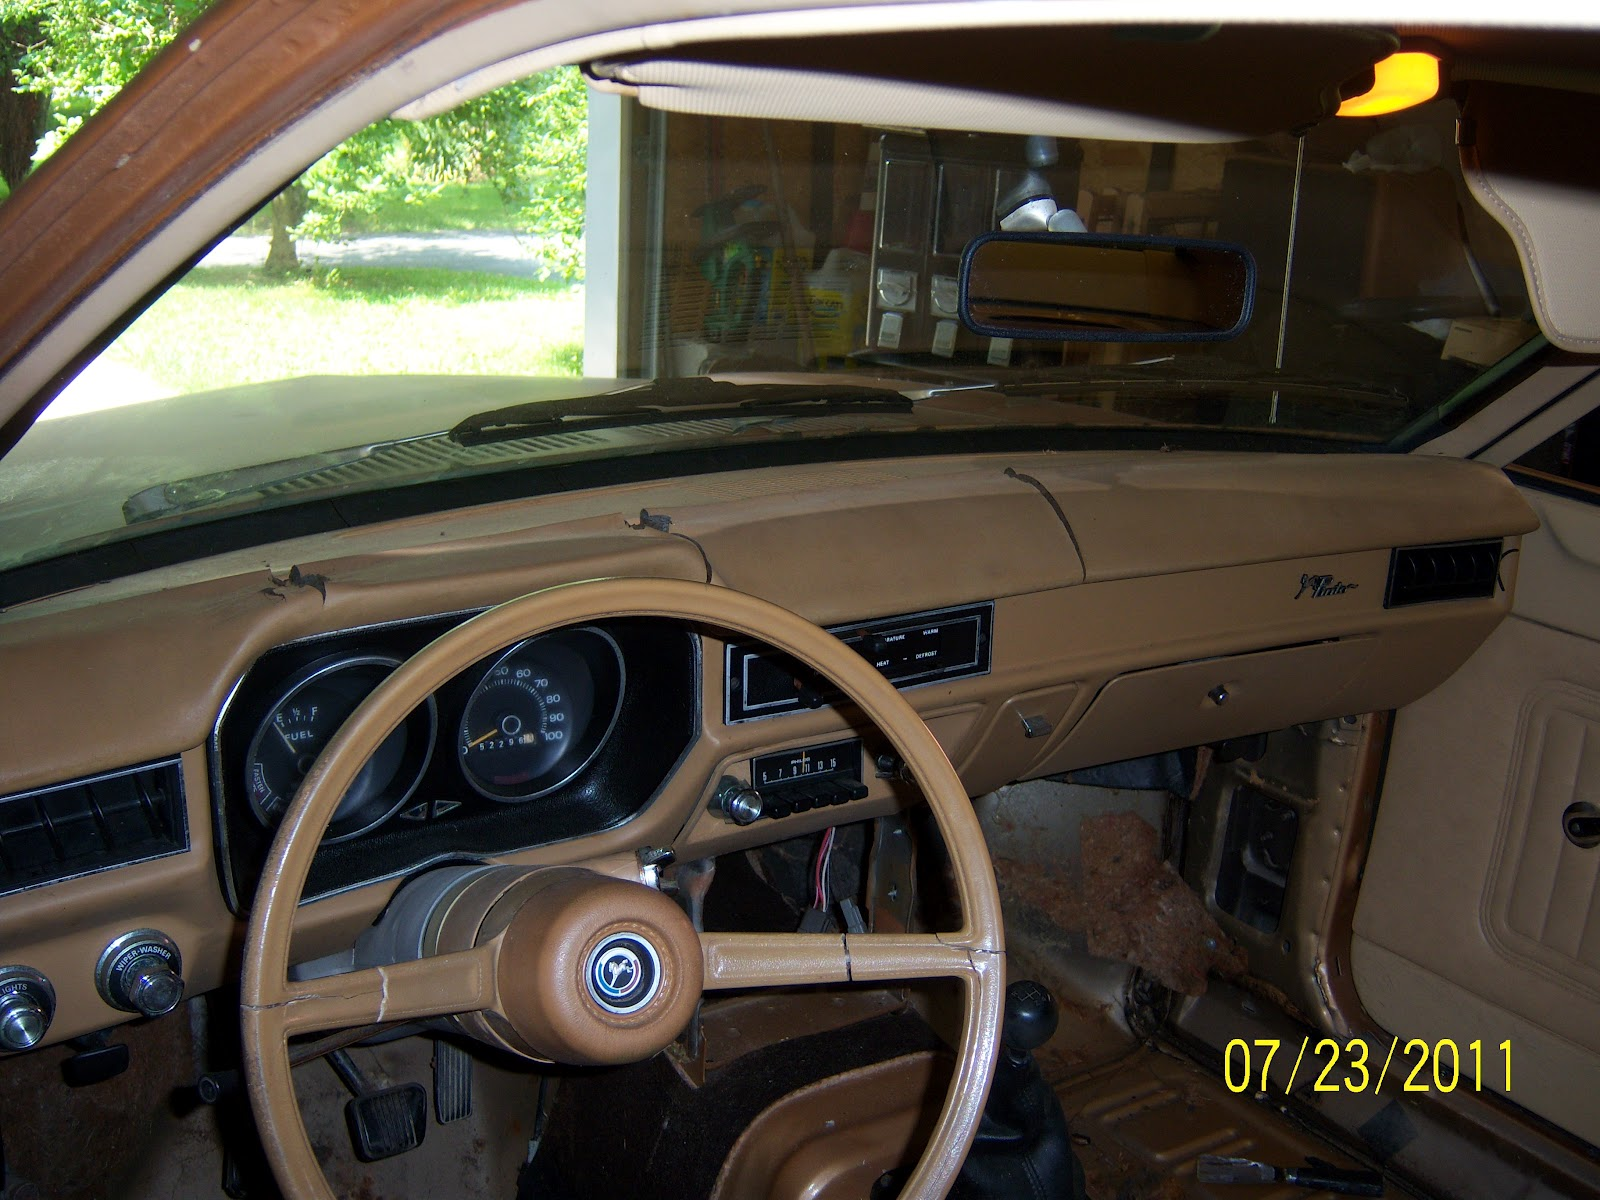 1976 Ford Pinto The Pinto Dashboard And Steering Wheel